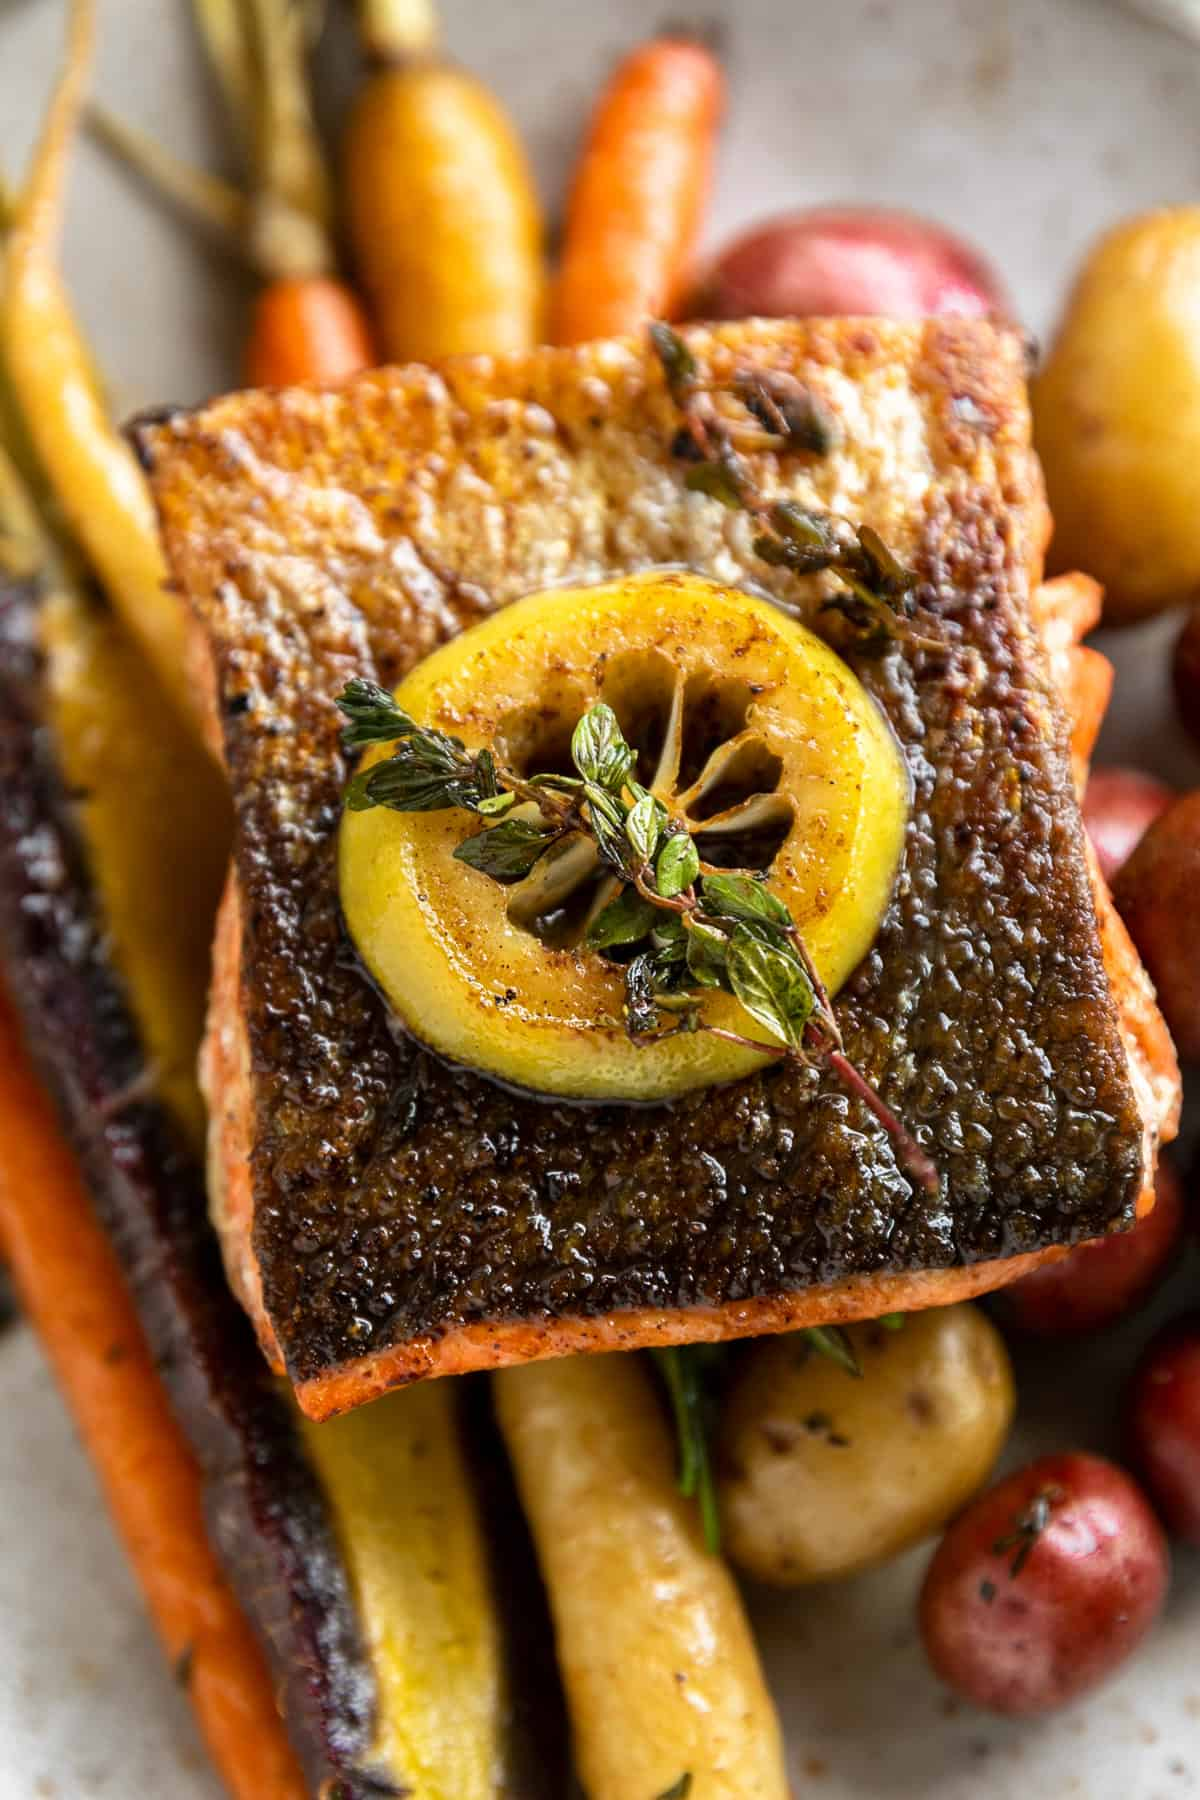 Brown Butter Herb Crispy Skin Salmon and vegetables. Crispy skin salmon is served on top of a bed of herbaceous roasted rainbow carrots and potatoes topped with a slice of lemon and thyme.